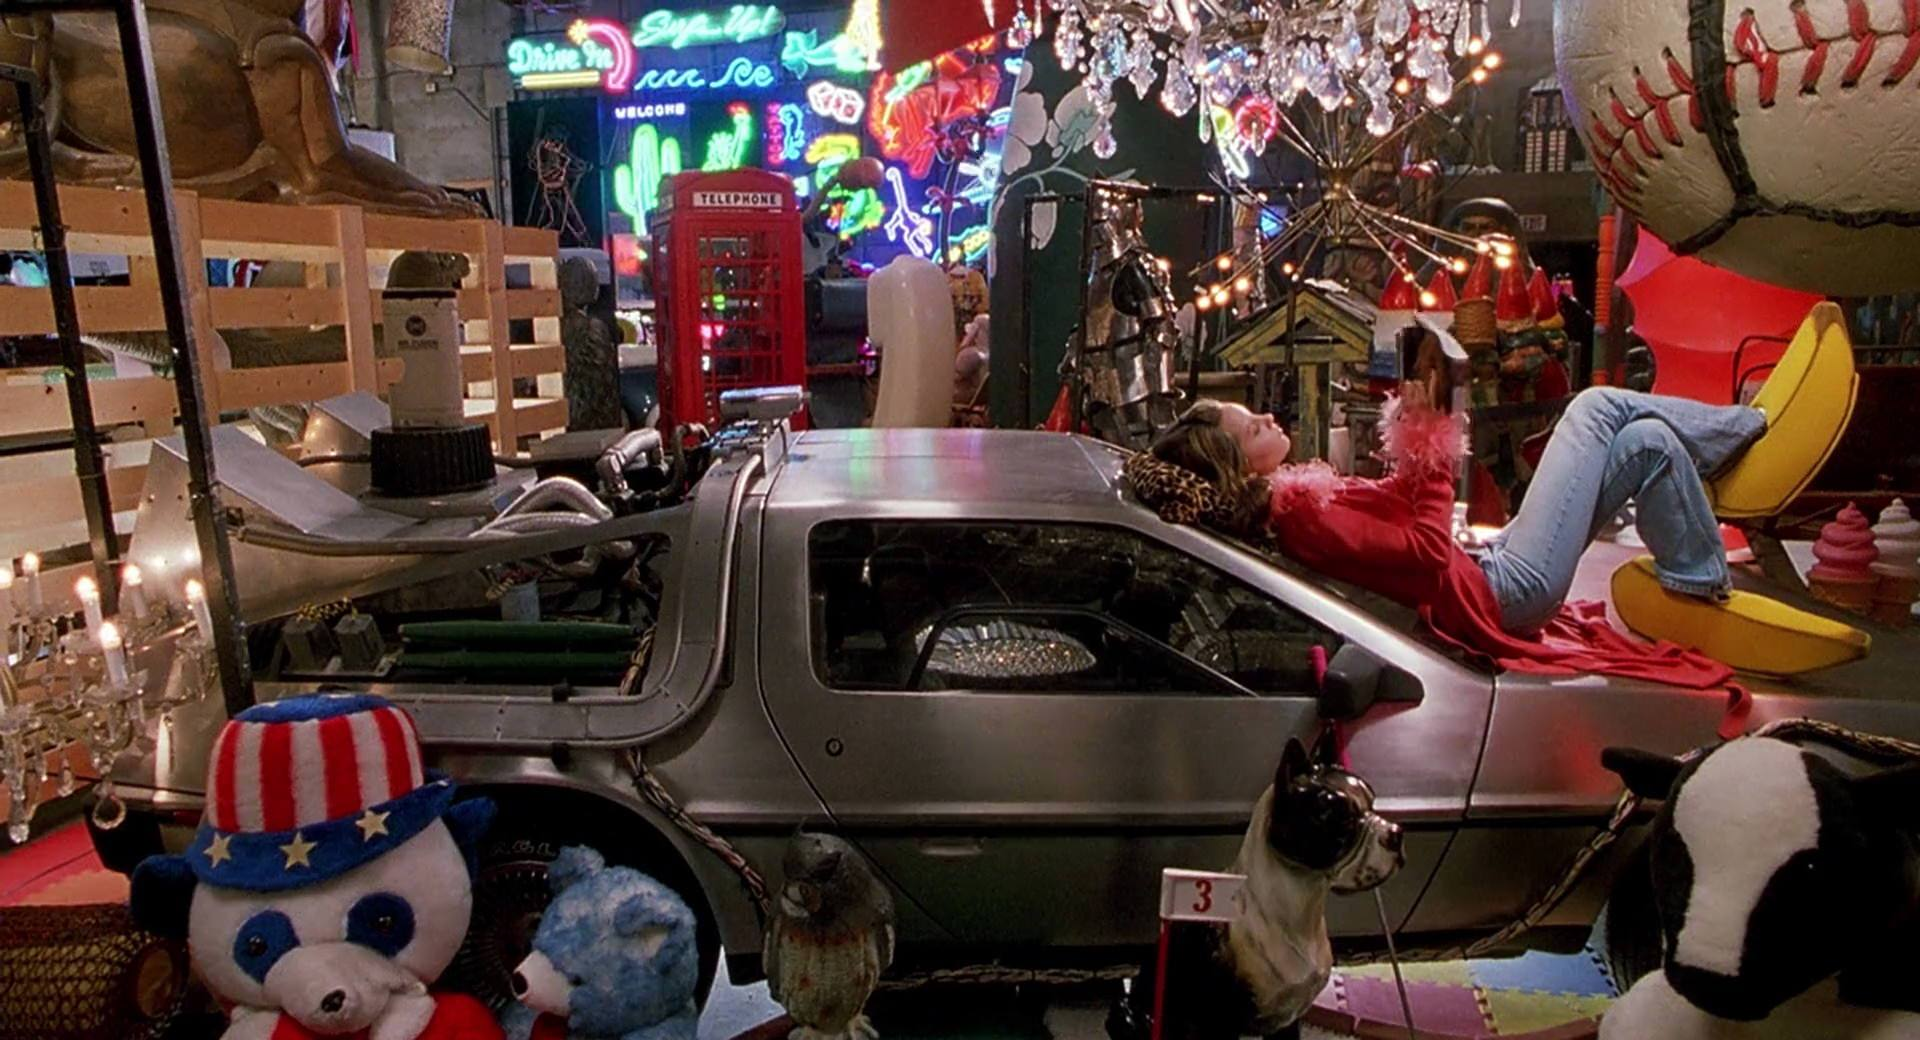 List of references to Back to the Future (Movies)